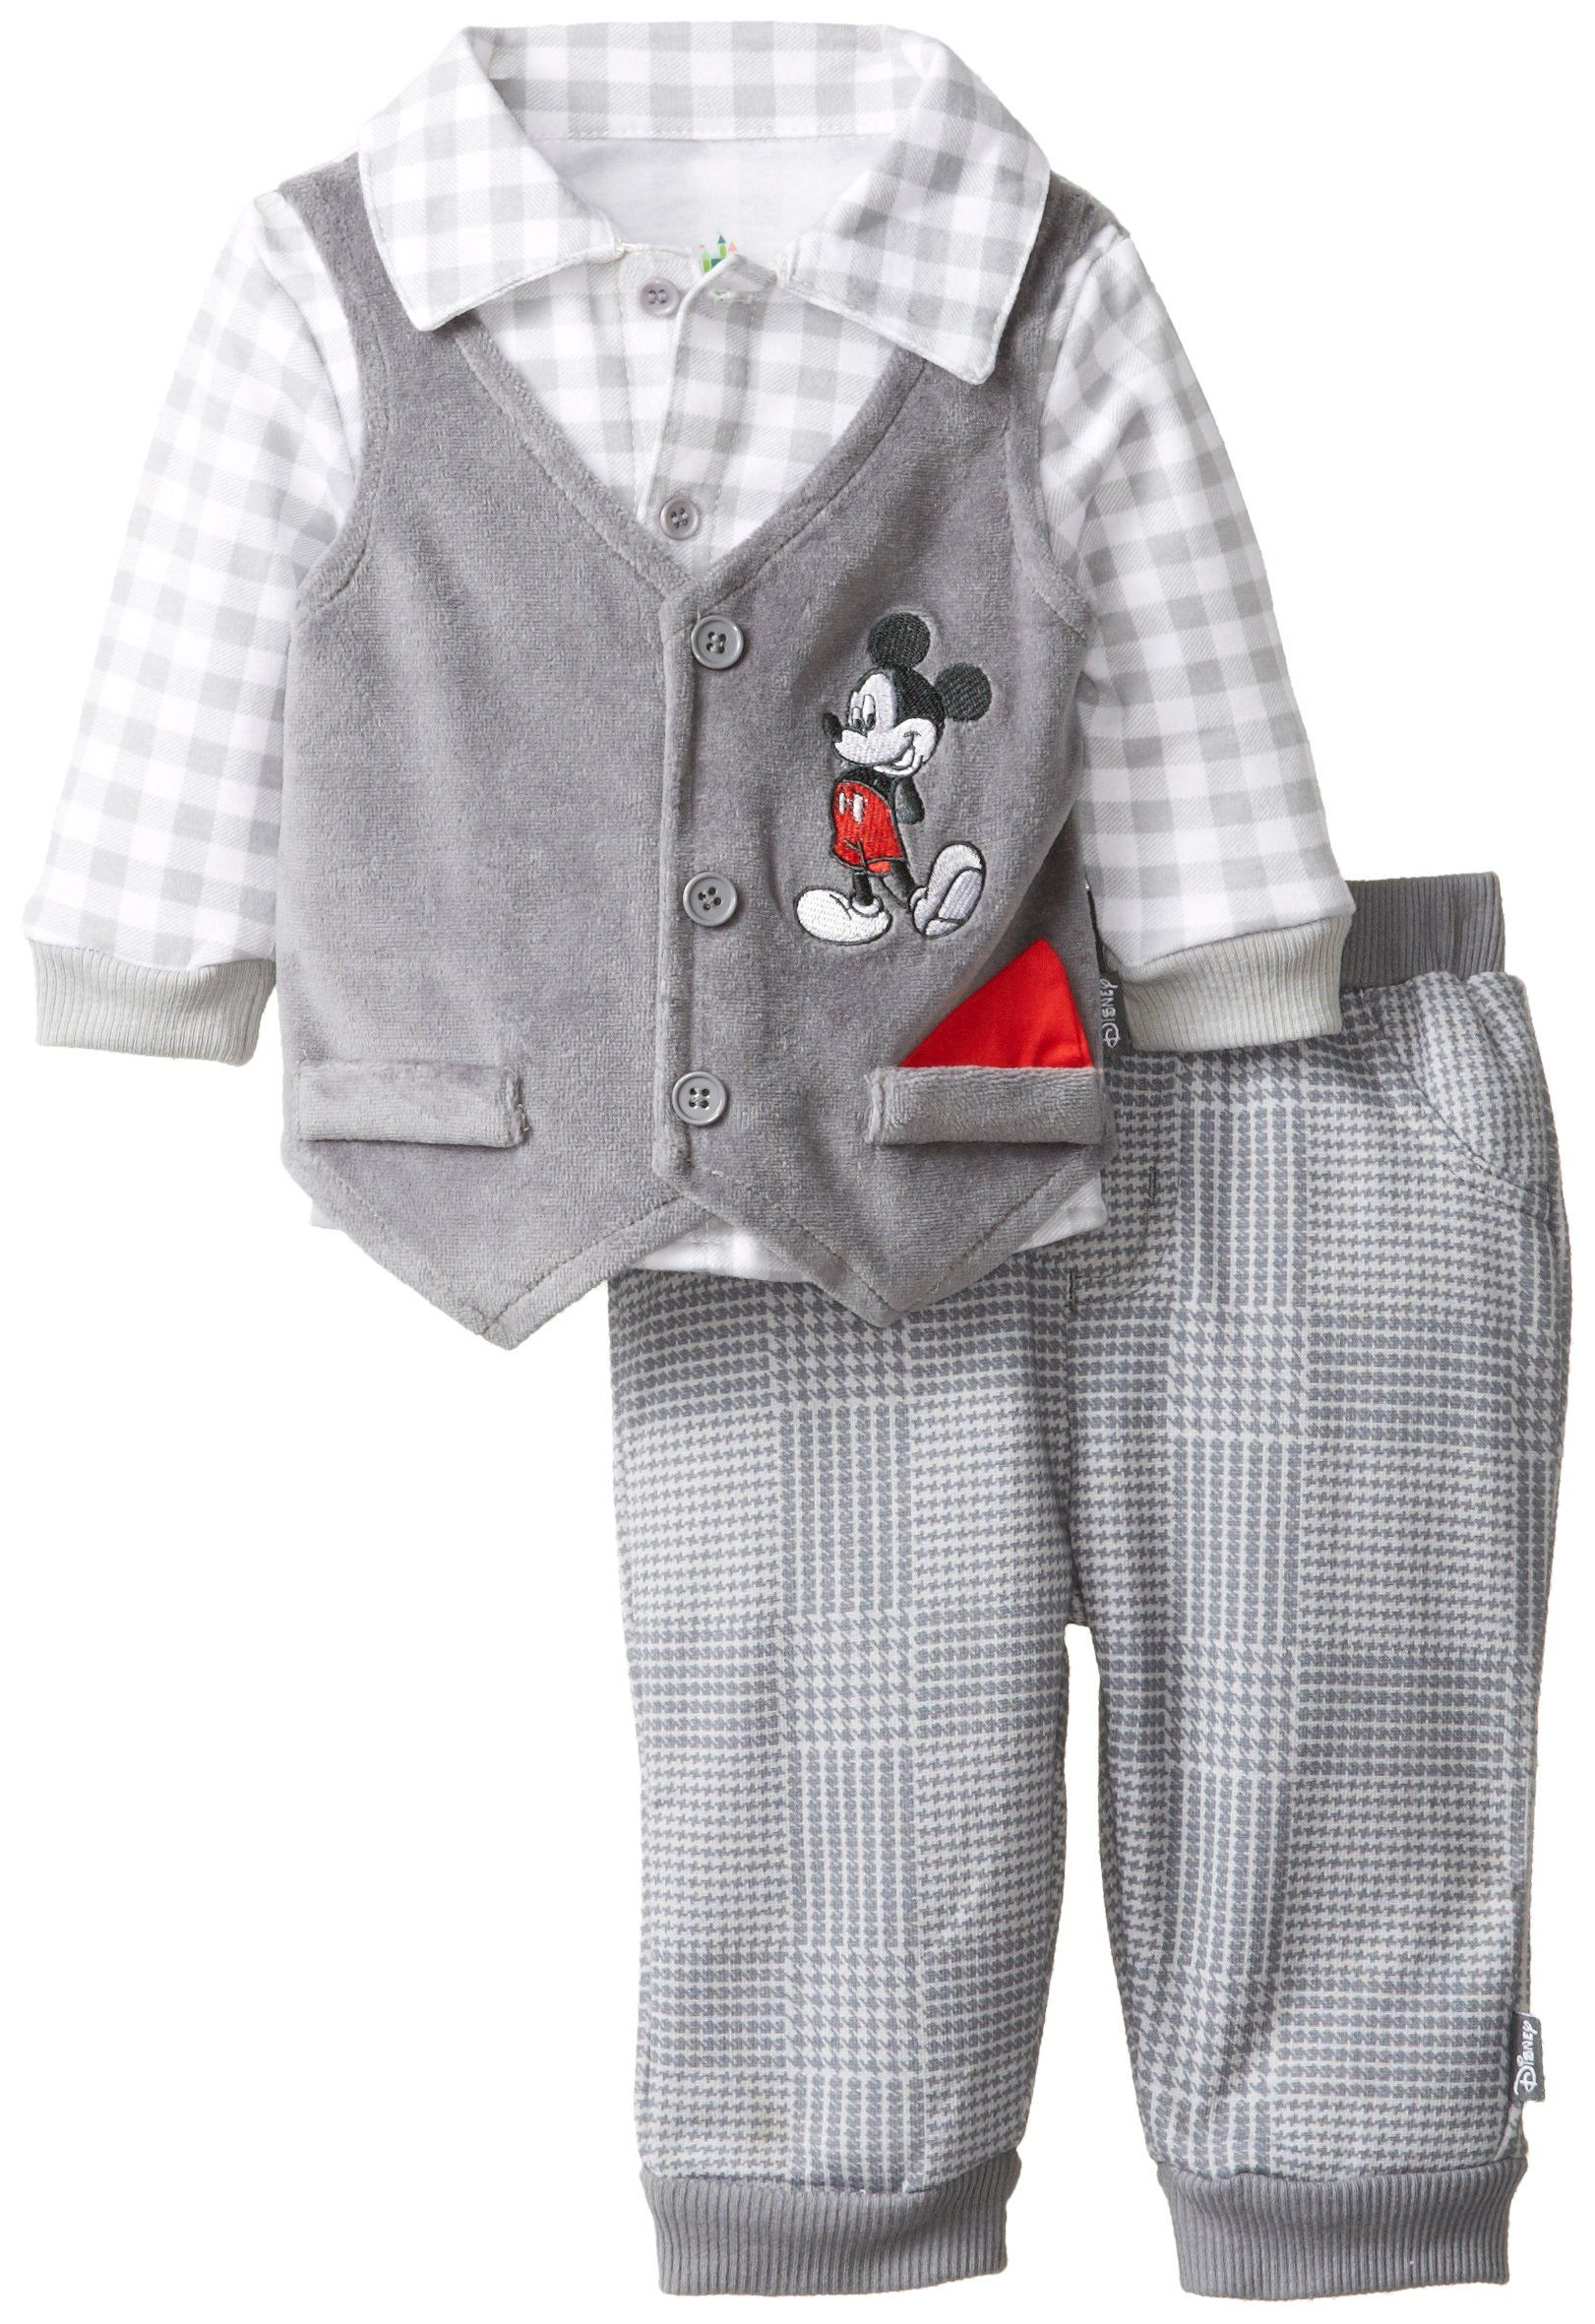 Disney Baby Boys Mickey Mouse 3 Piece Vest Set with Collared Shirt